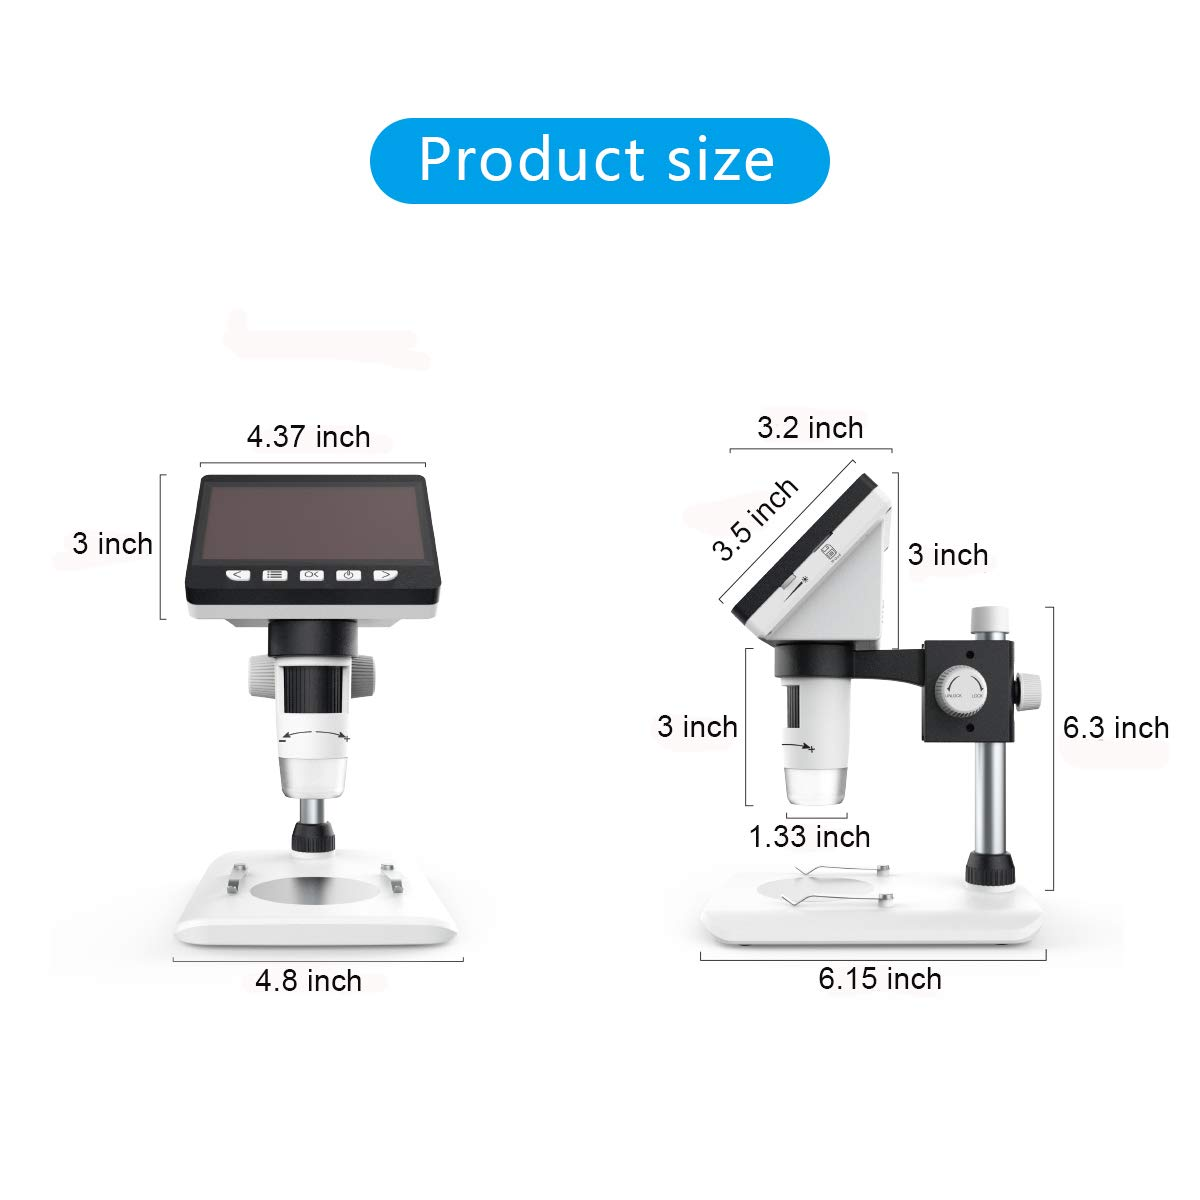 LCD Digital Microscope, SKYBASIC 4.3 inch 50X-1000X Magnification Zoom HD 1080P 2 Megapixels Compound Microscope 8 LED Adjustable LED Light Video Microscope by SKYBASIC (Image #5)